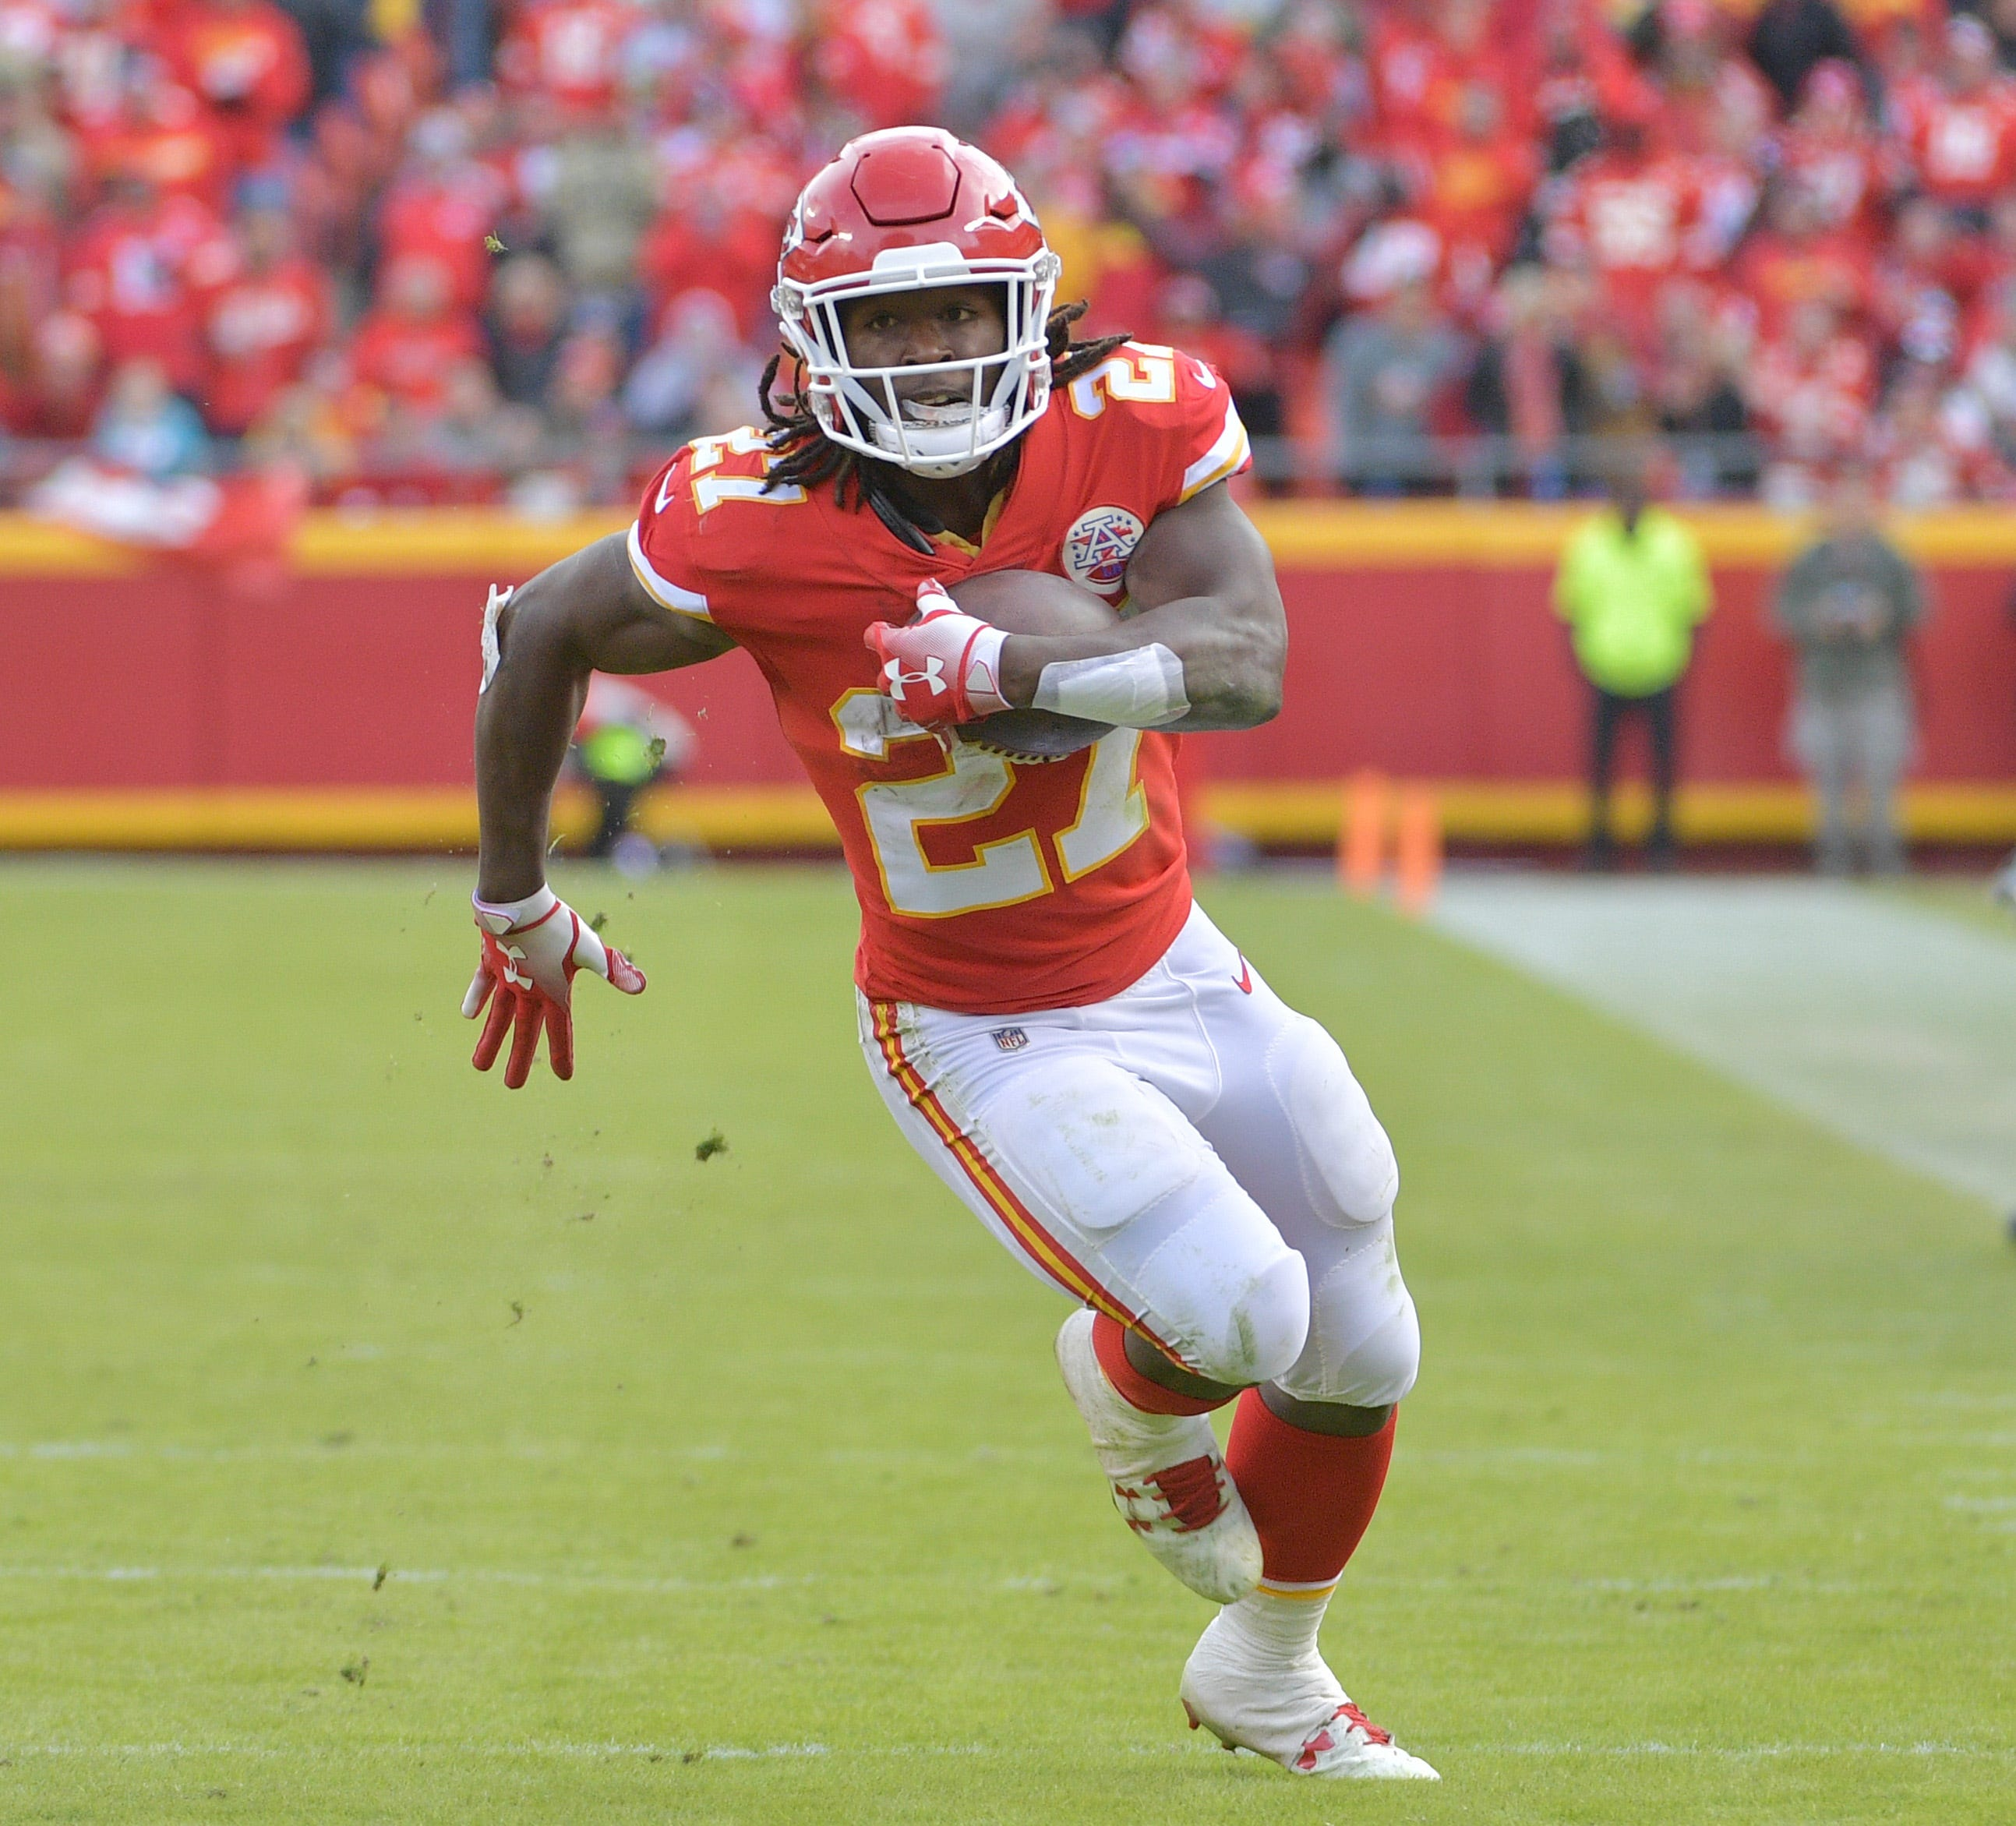 Police spokesperson: No one in department watched security video of Kareem Hunt incident